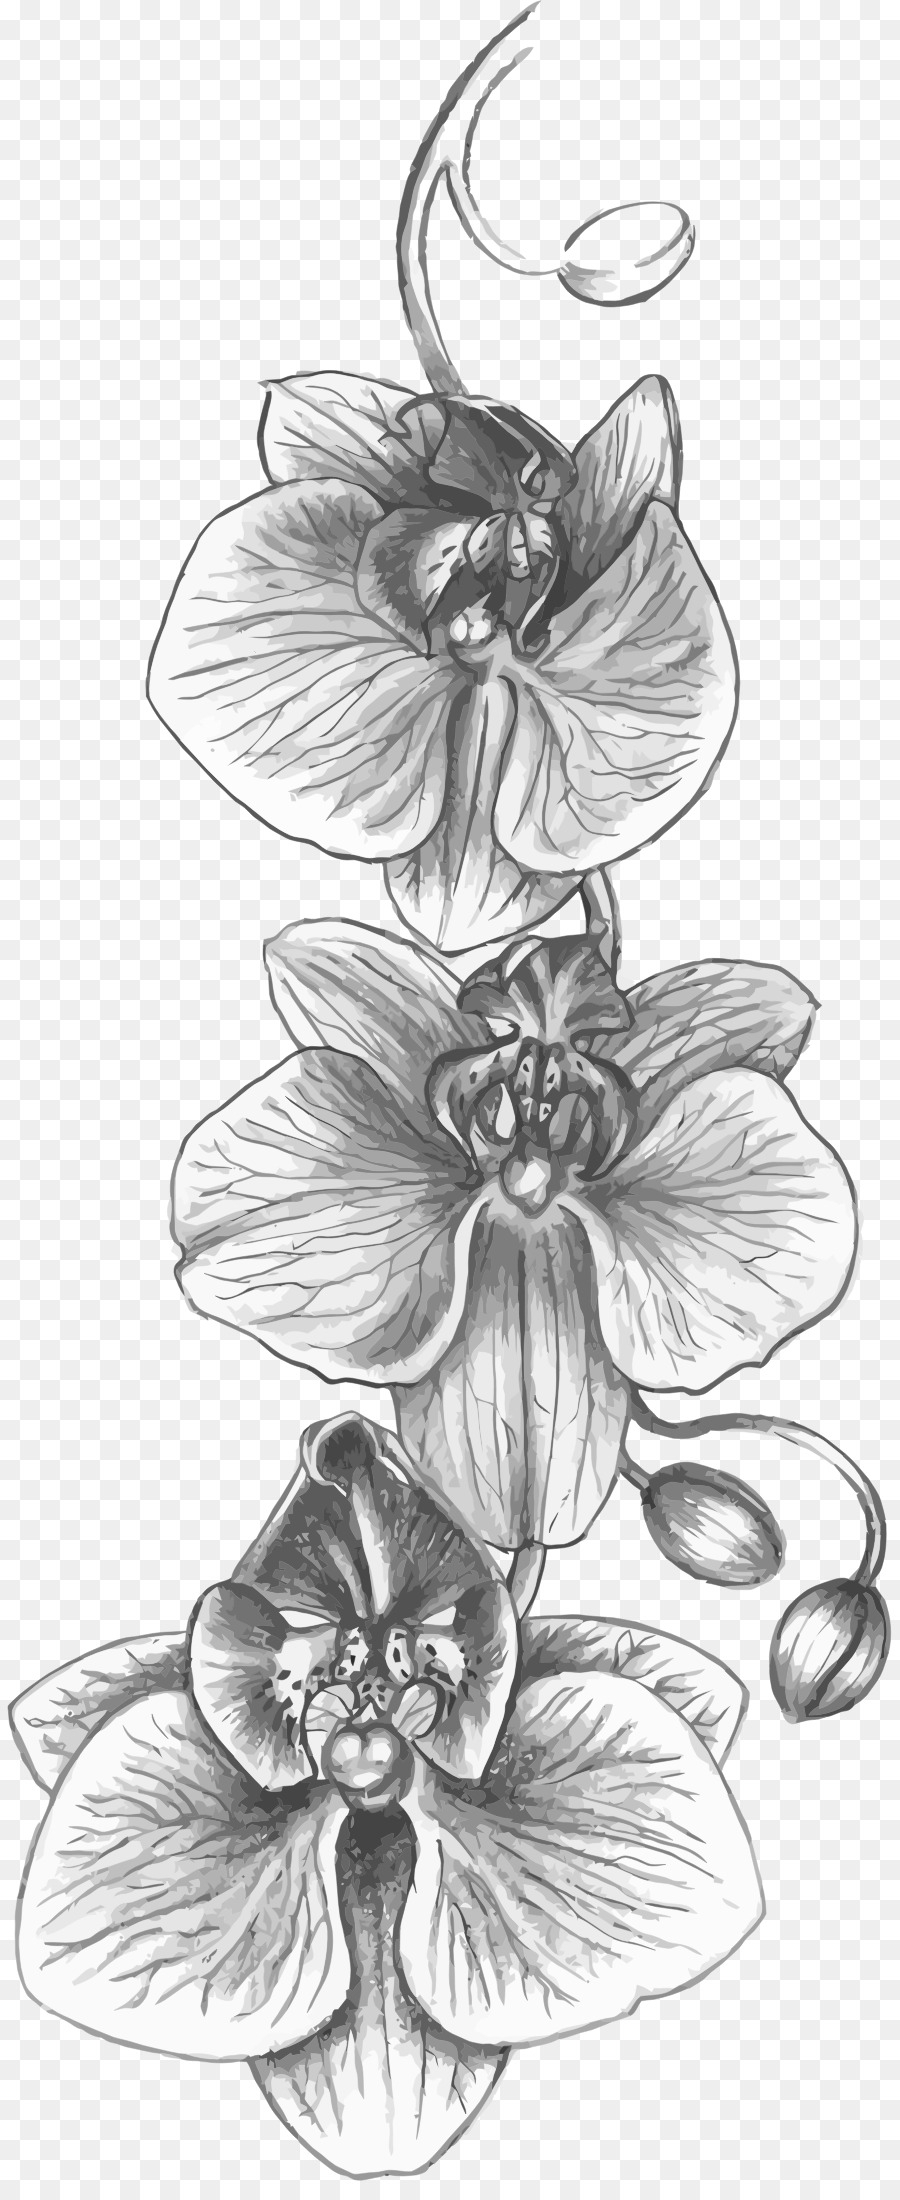 how to draw an orchid flower orchid flower drawing free download on clipartmag an how to orchid draw flower